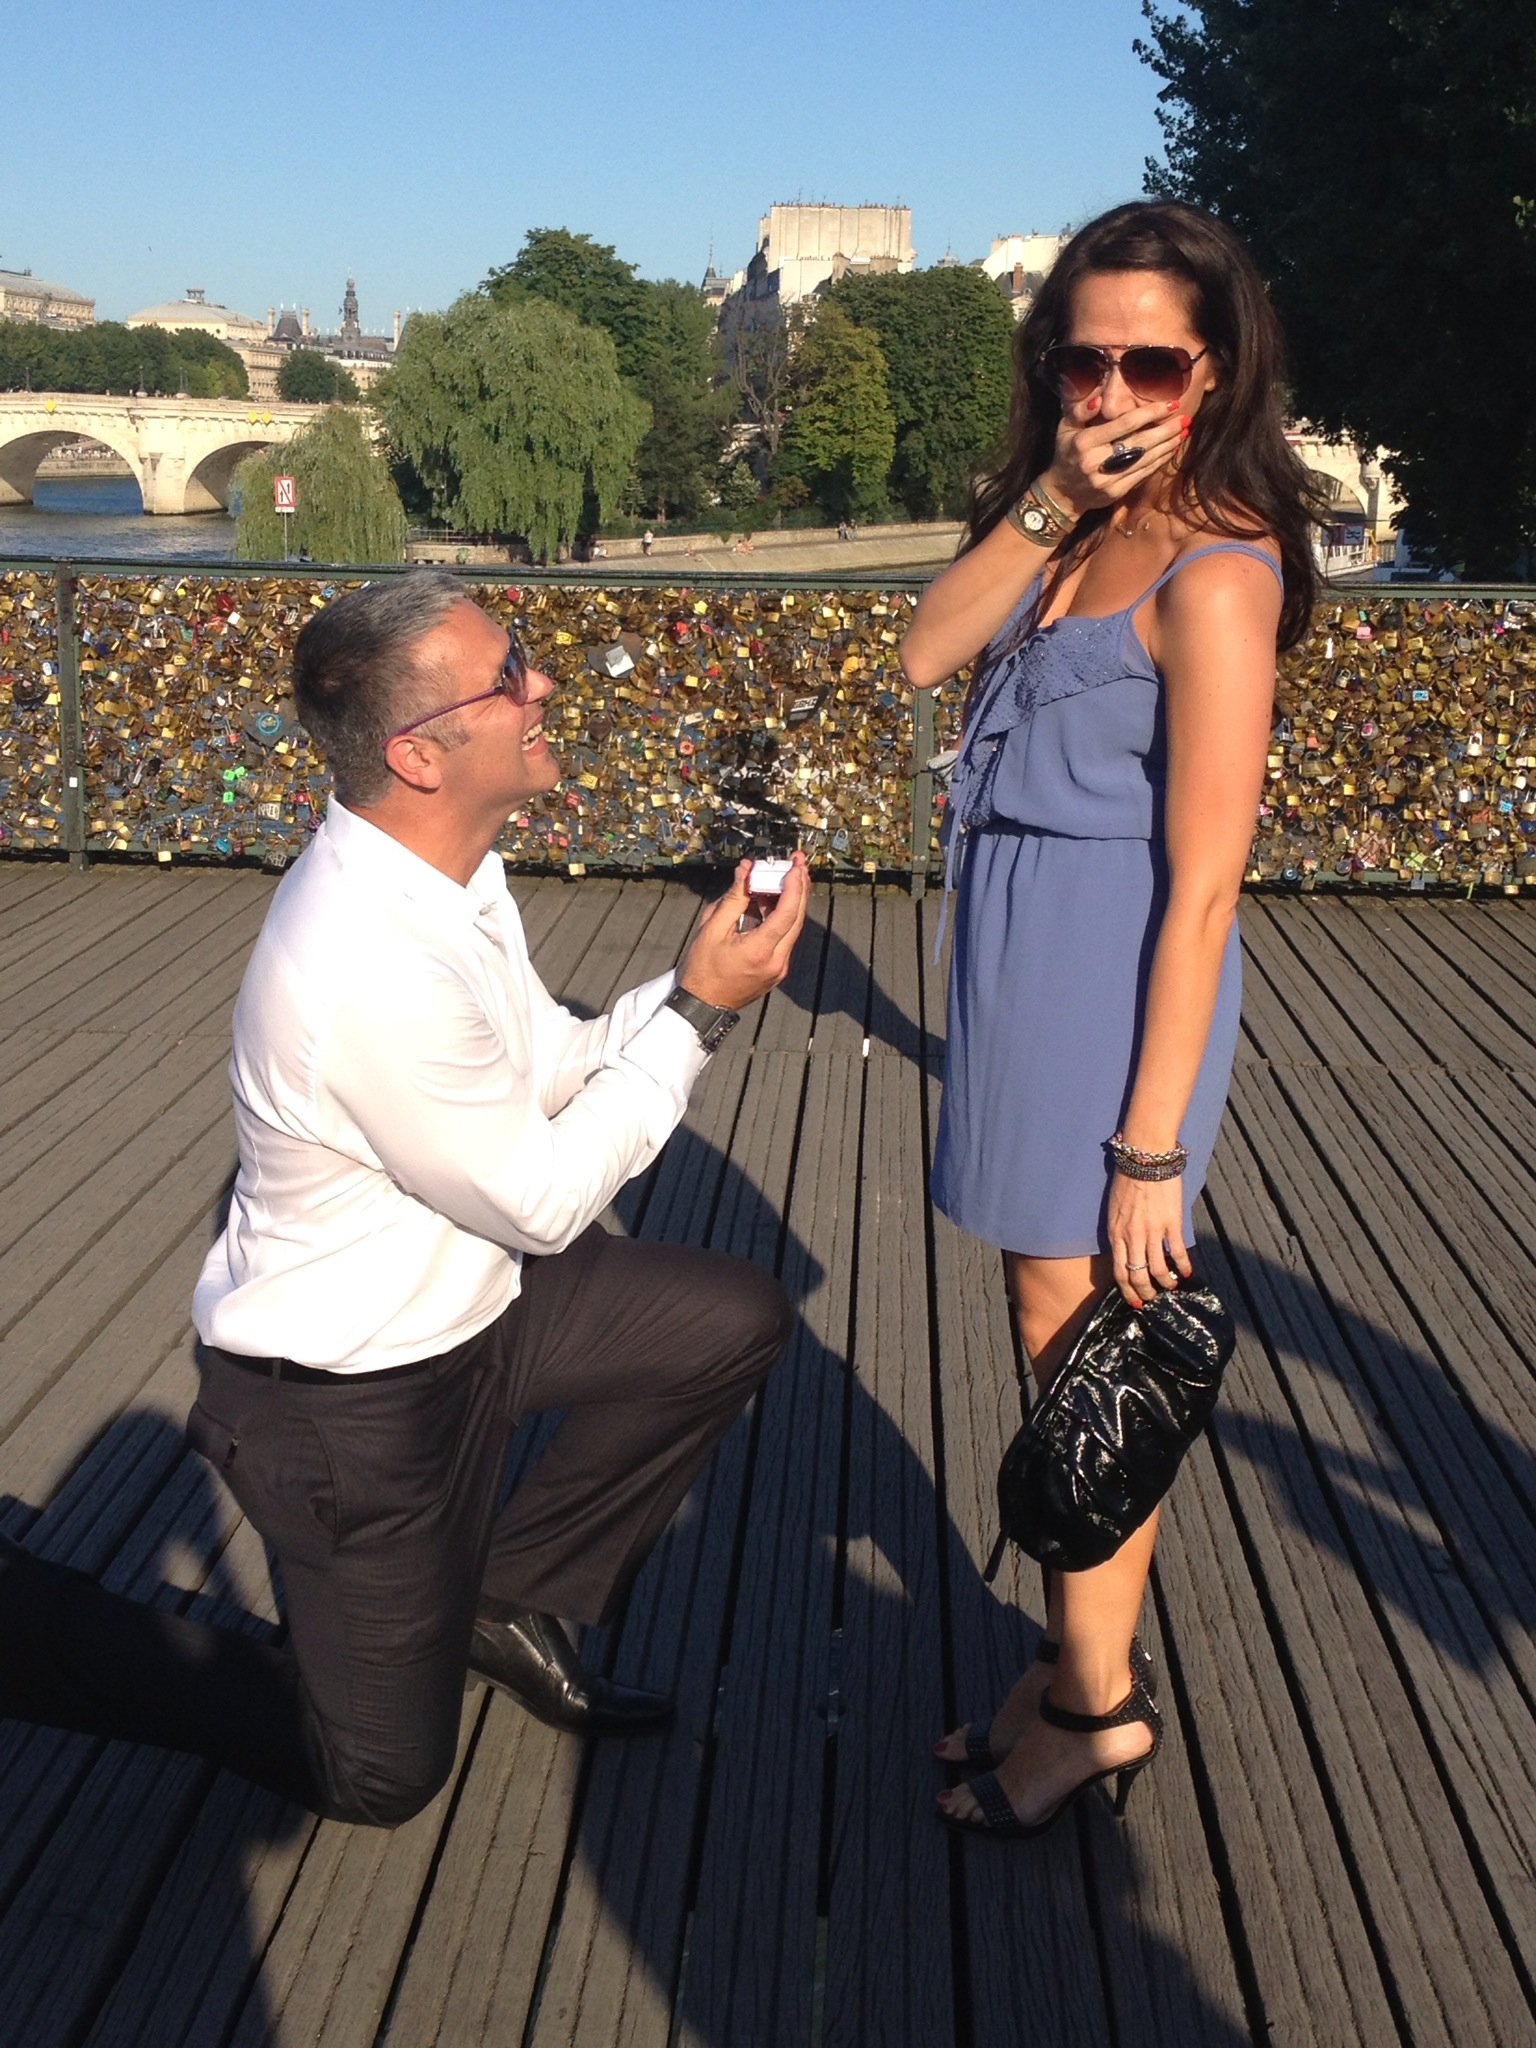 Image 4 of Erica and Doug | Proposal in Paris